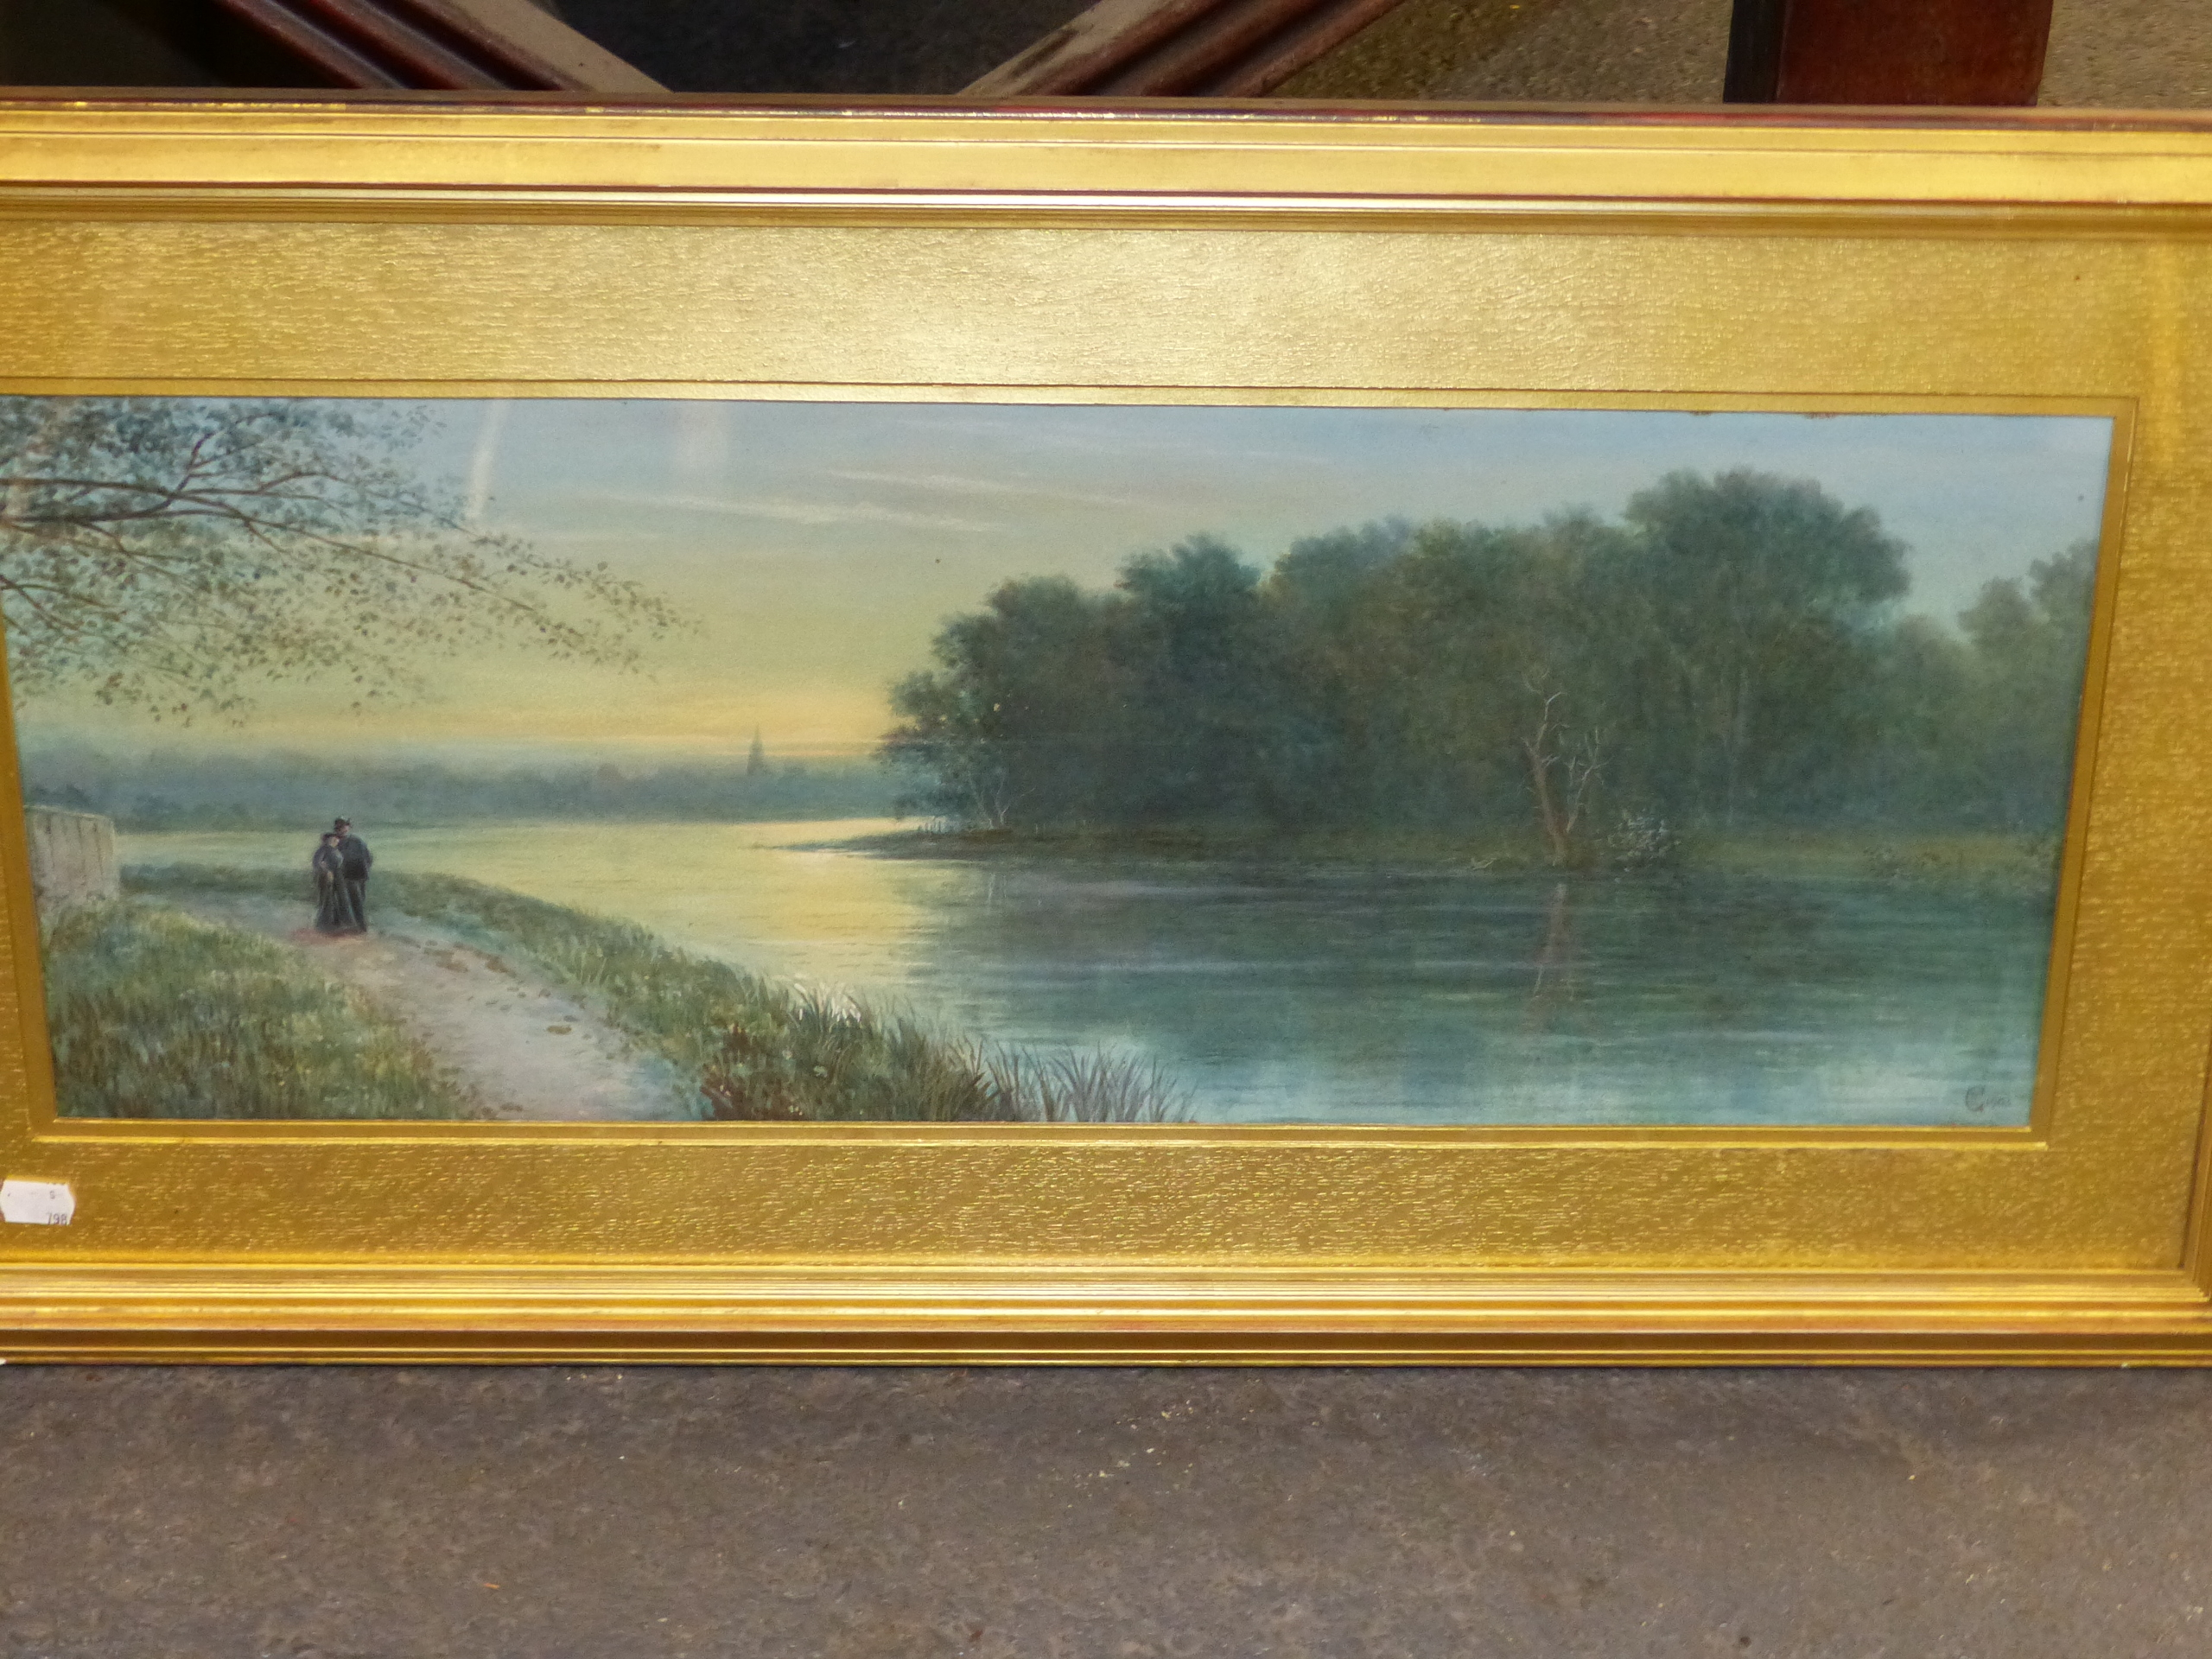 19th/20th C. ENGLISH SCHOOL HOMEWARD BOUND, SIGNED INDISTINCTLY WATERCOLOUR. 28 x 46 cms TOGETHER - Image 6 of 15